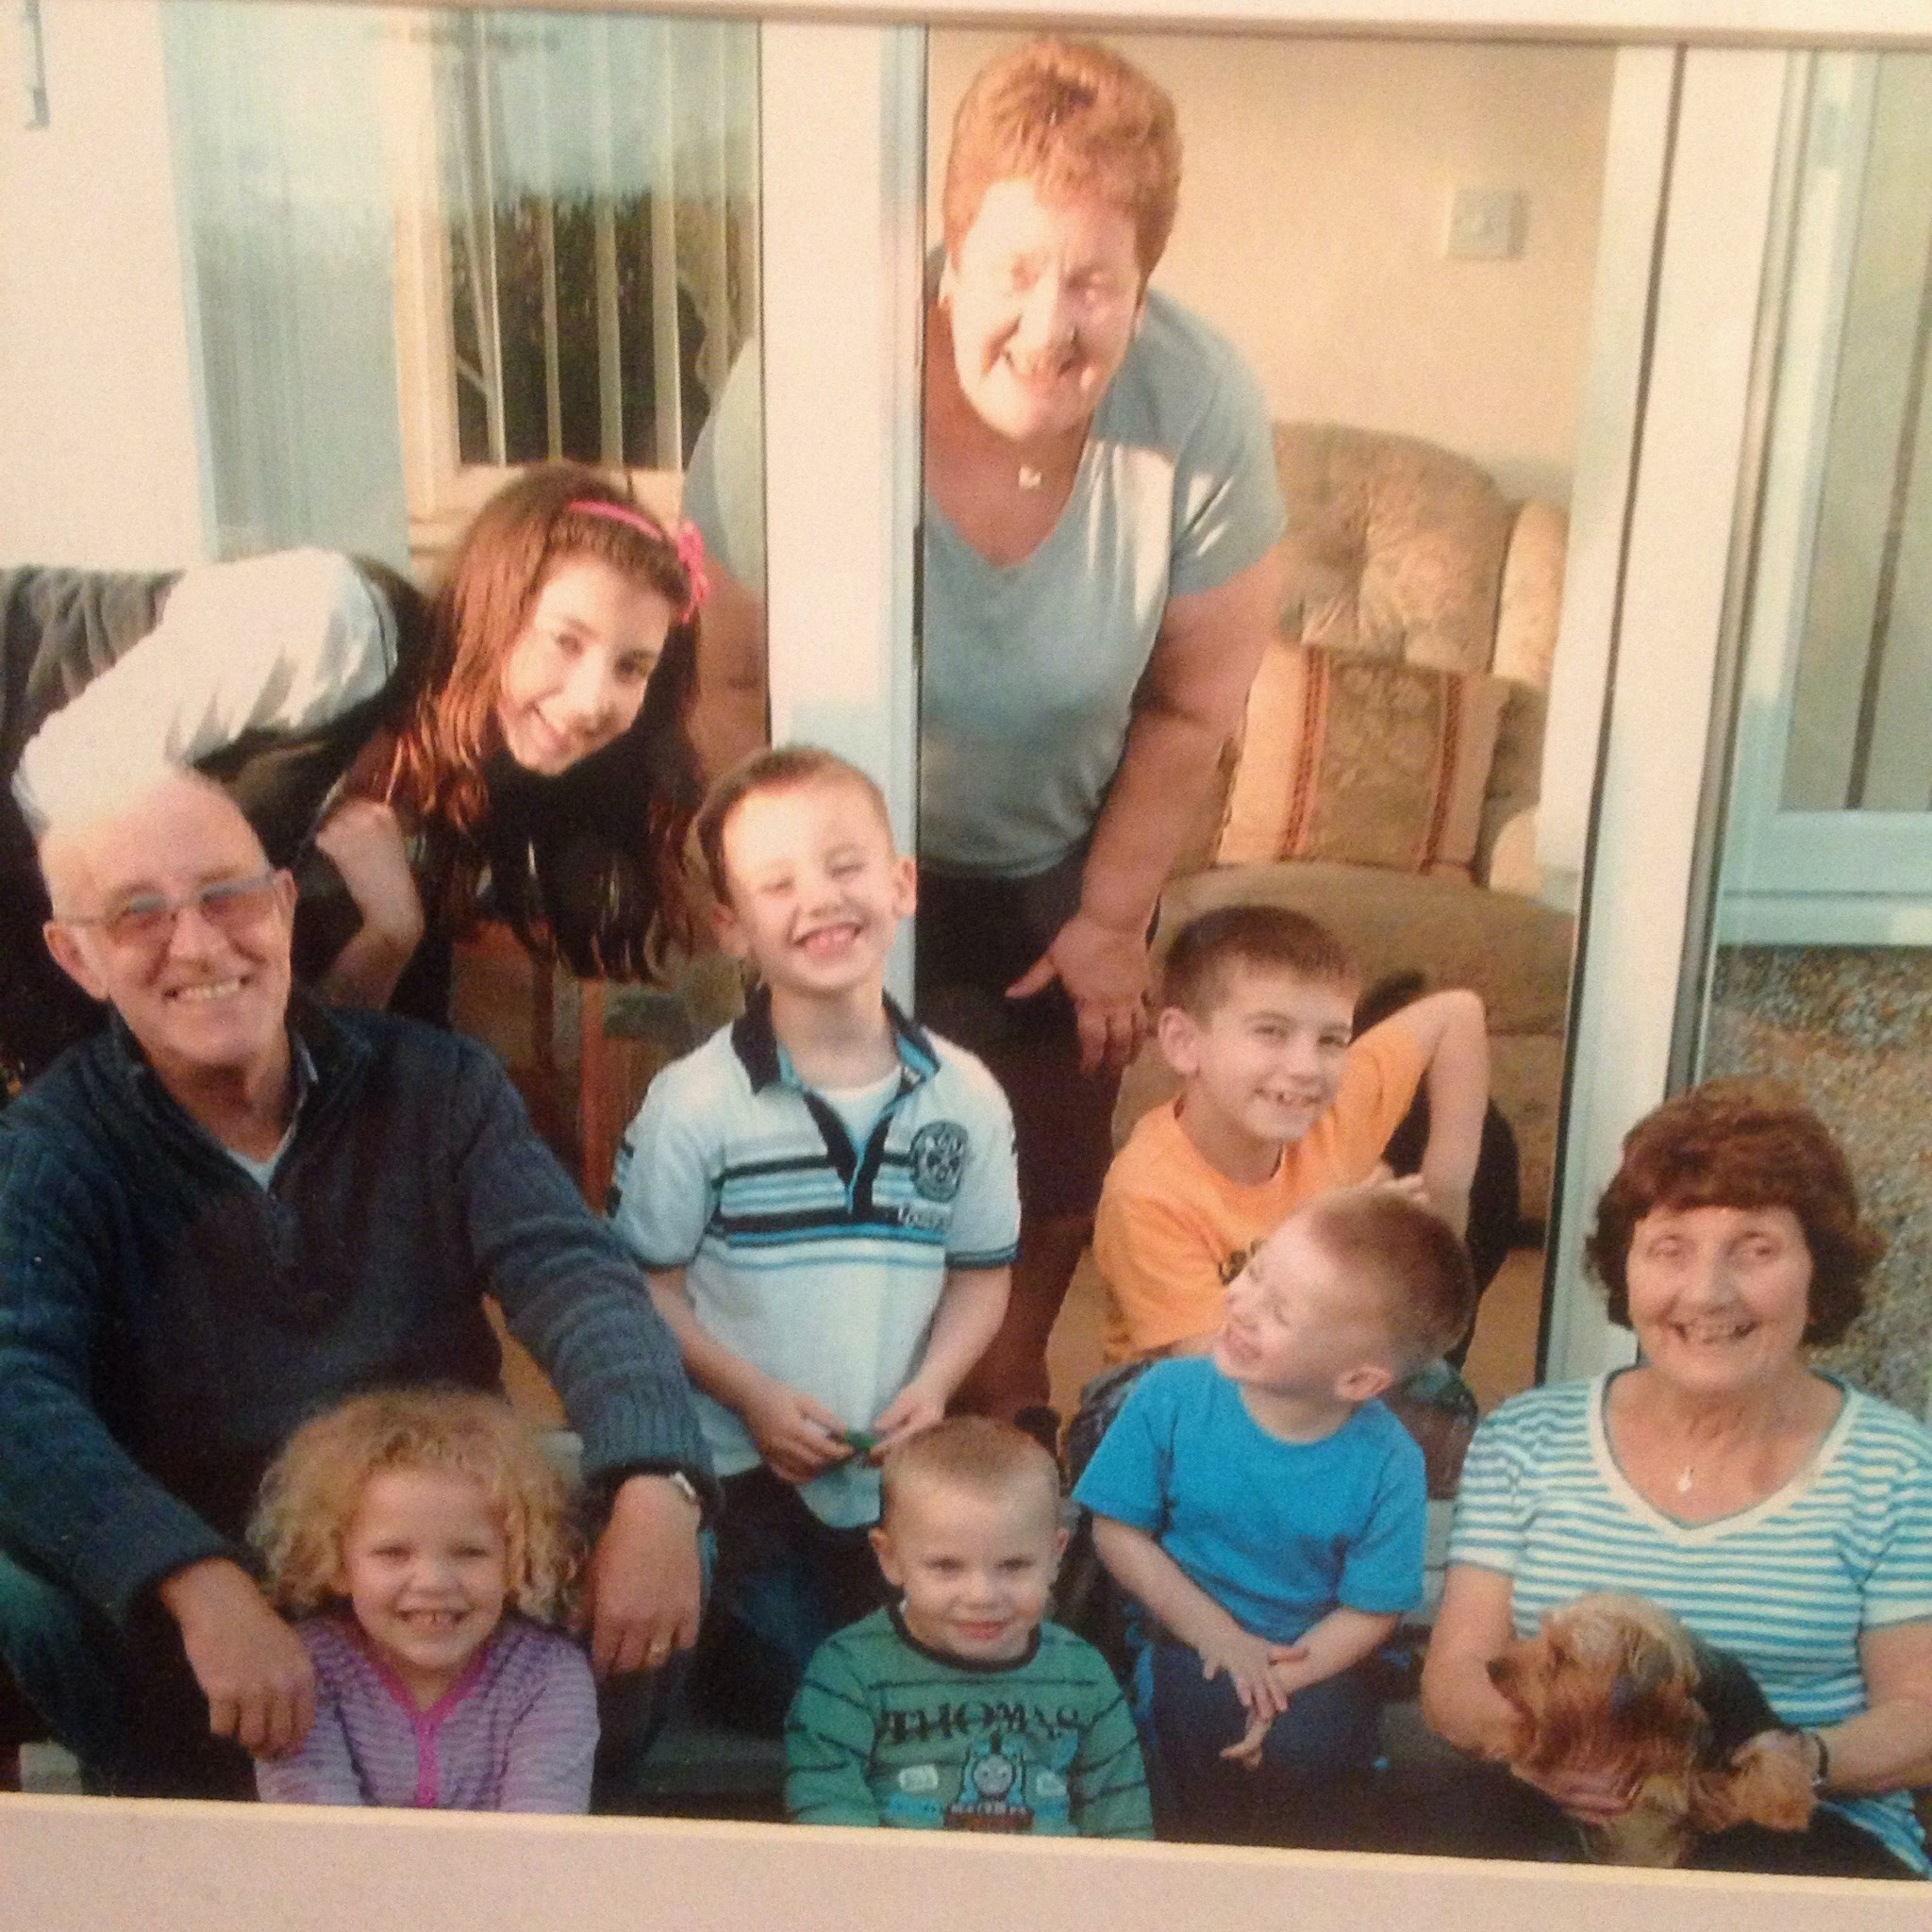 Lovely memories of all the family together